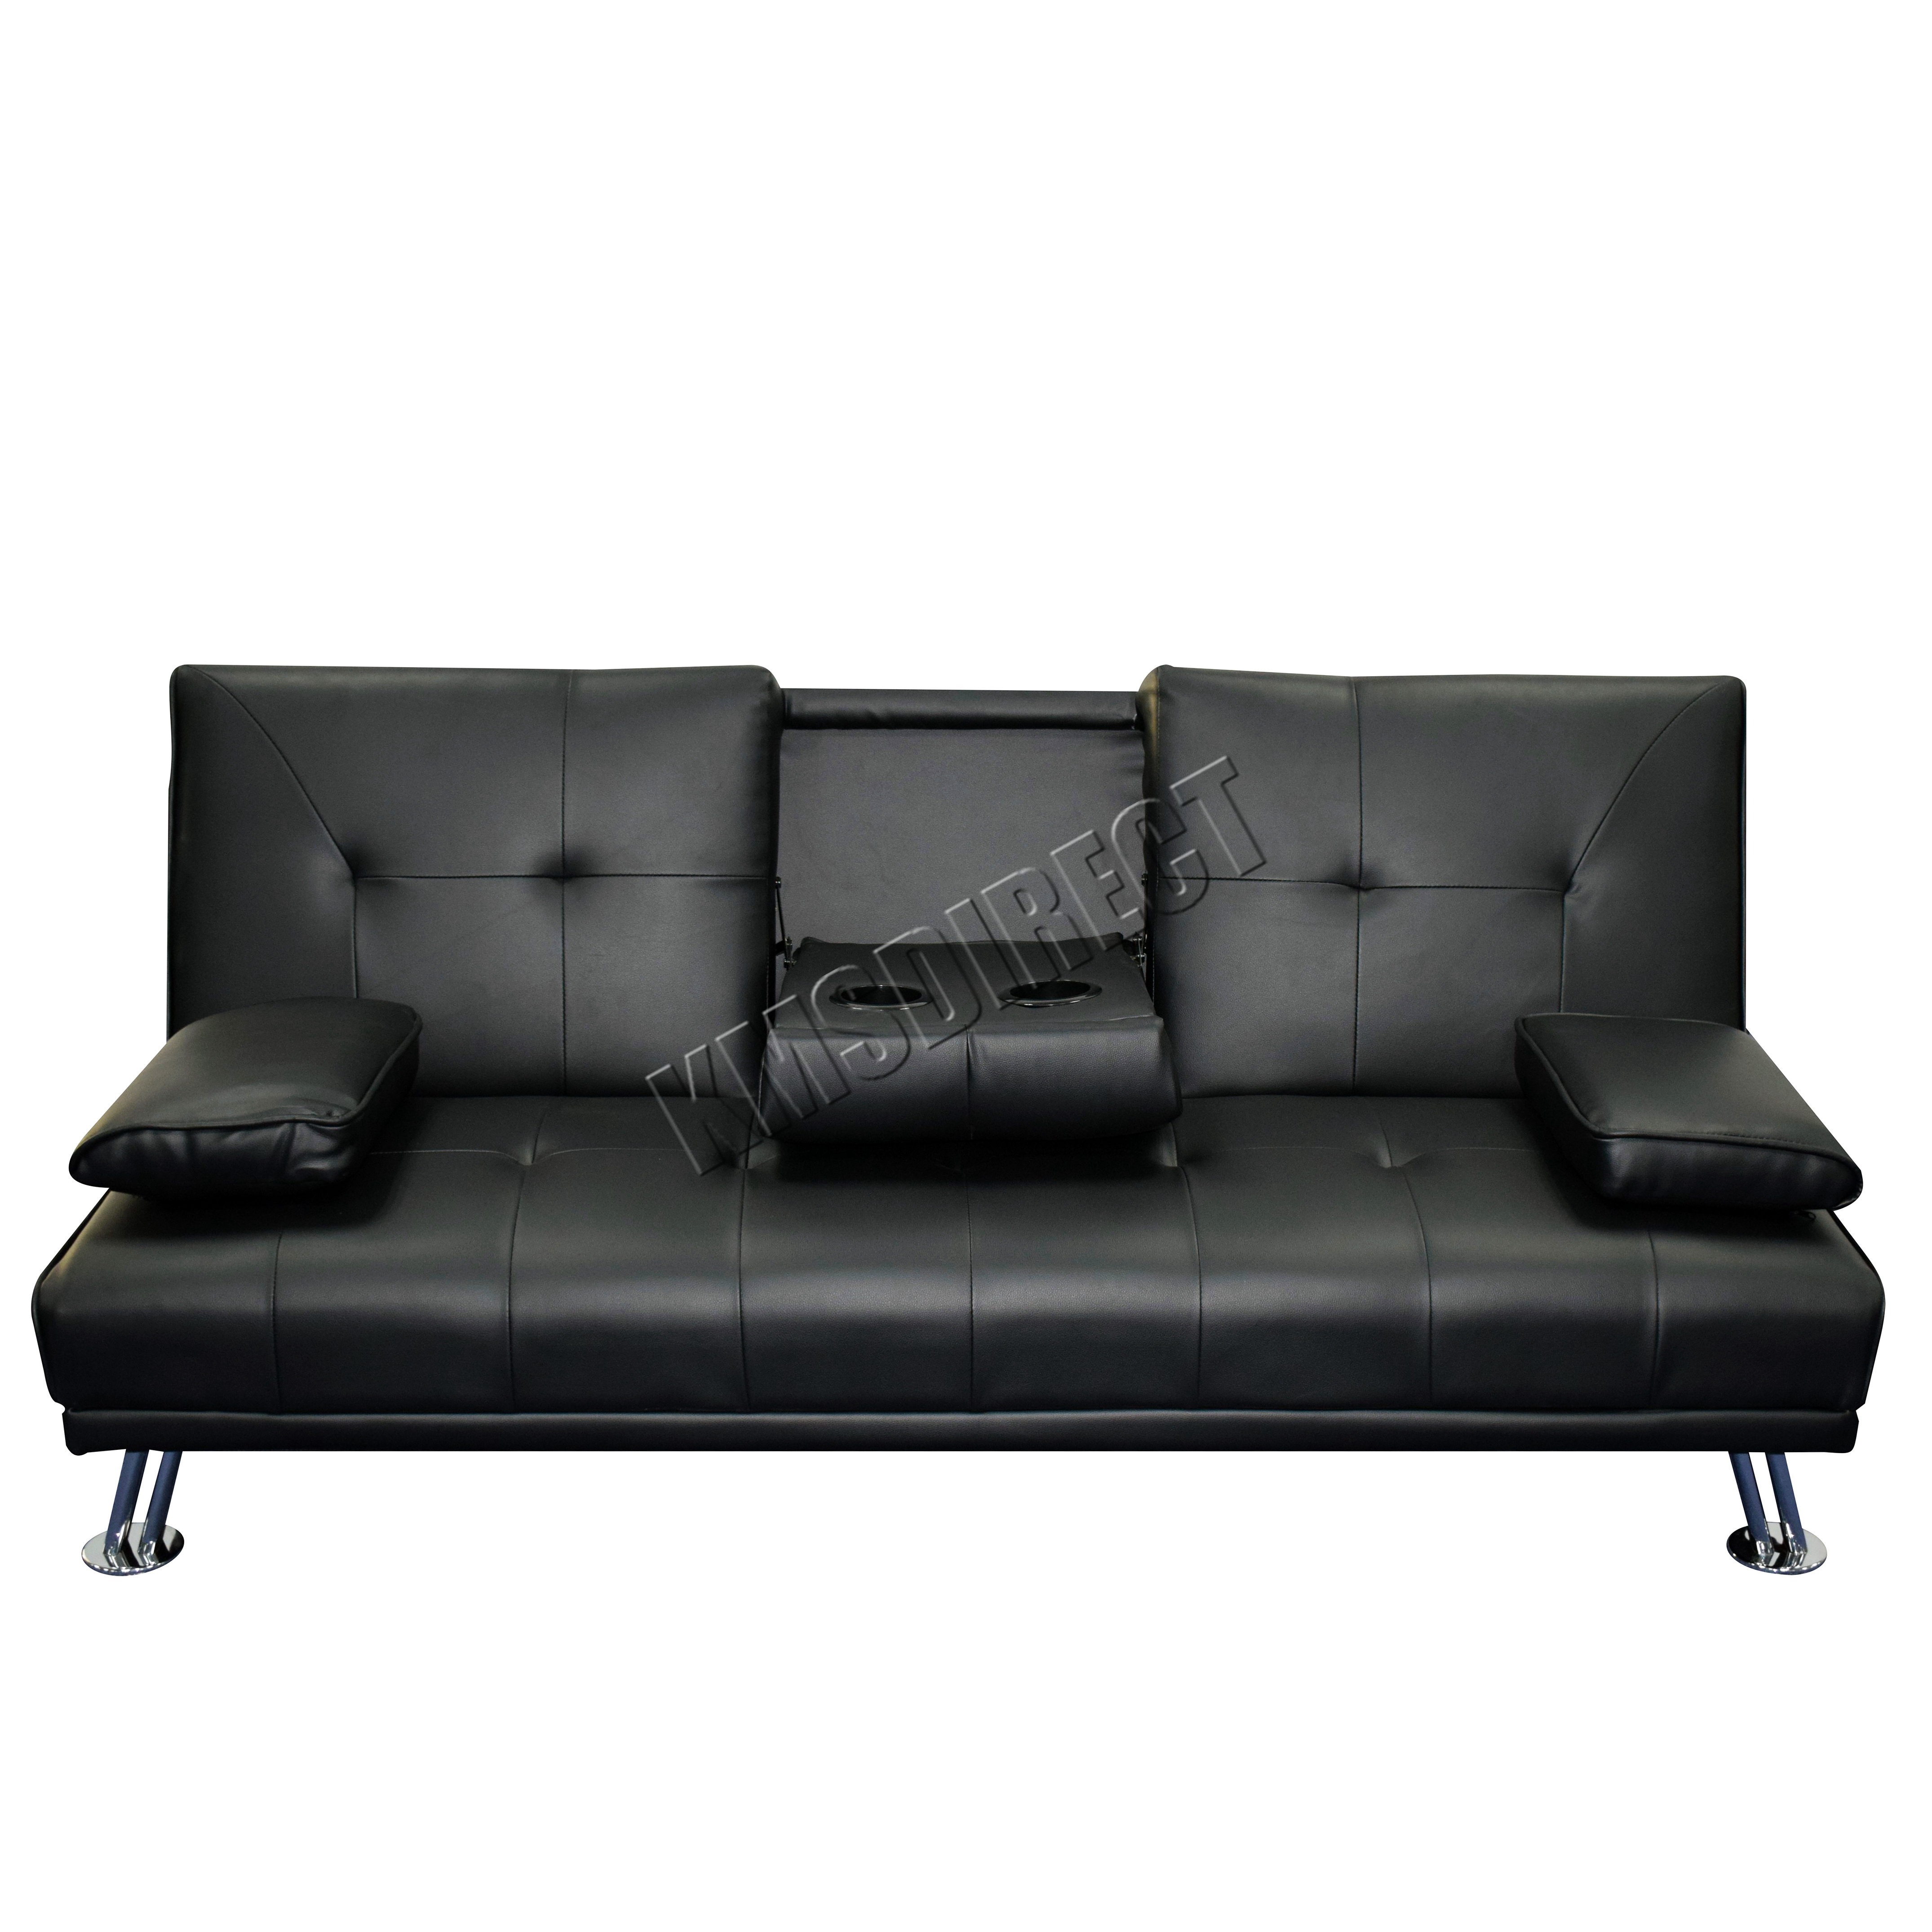 leather 3 seat sofa bed ashley manor reviews faux manhattan recliner seater modern